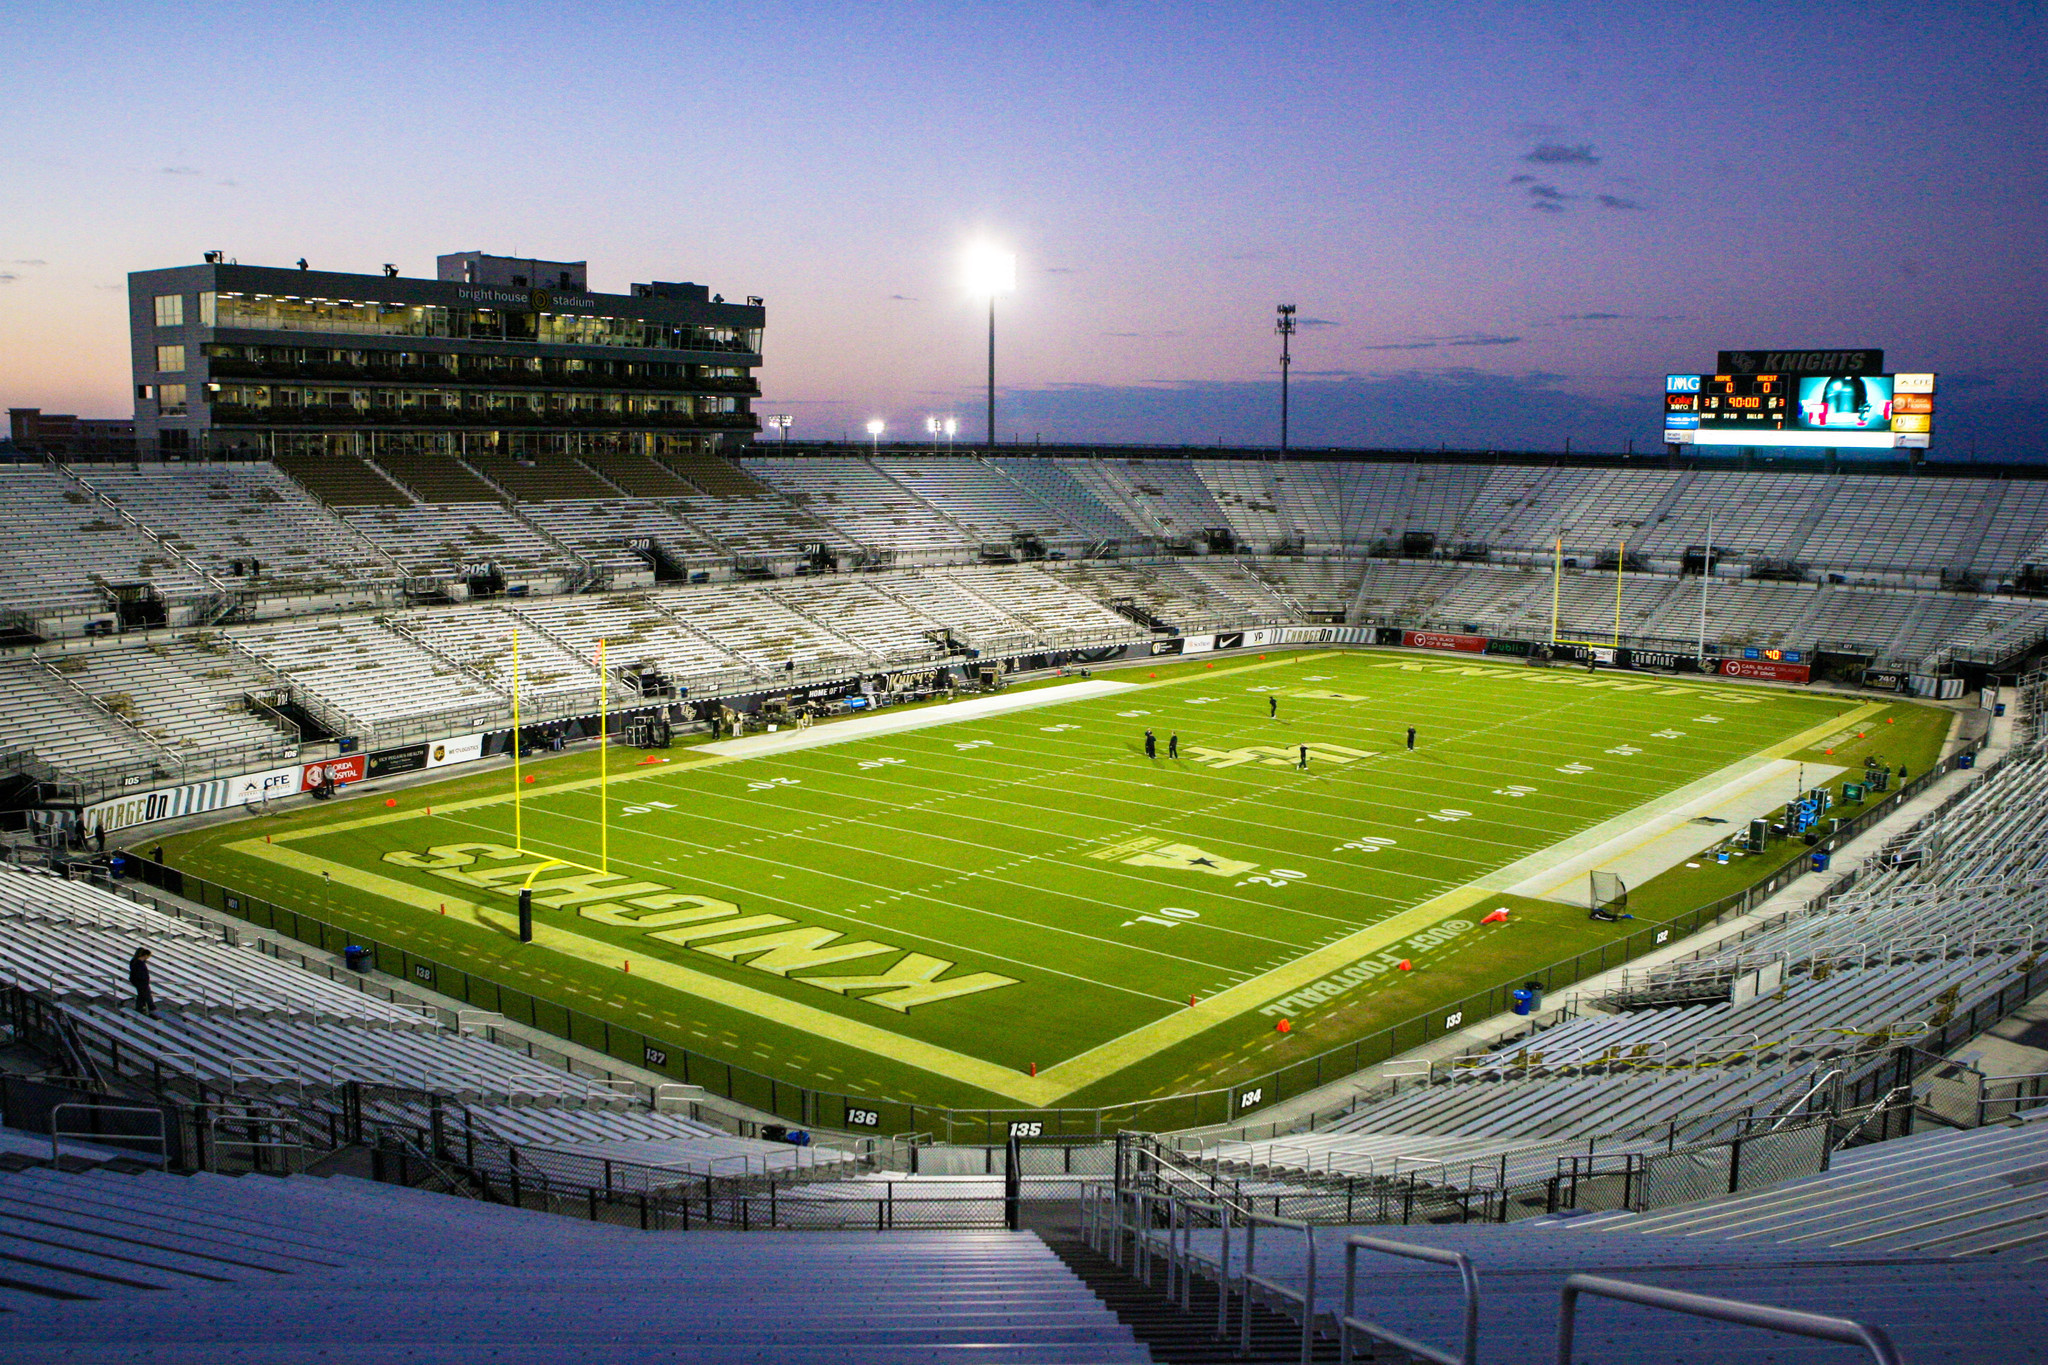 Ucf To Introduce Clear Bag Policy For 2016 Football Season